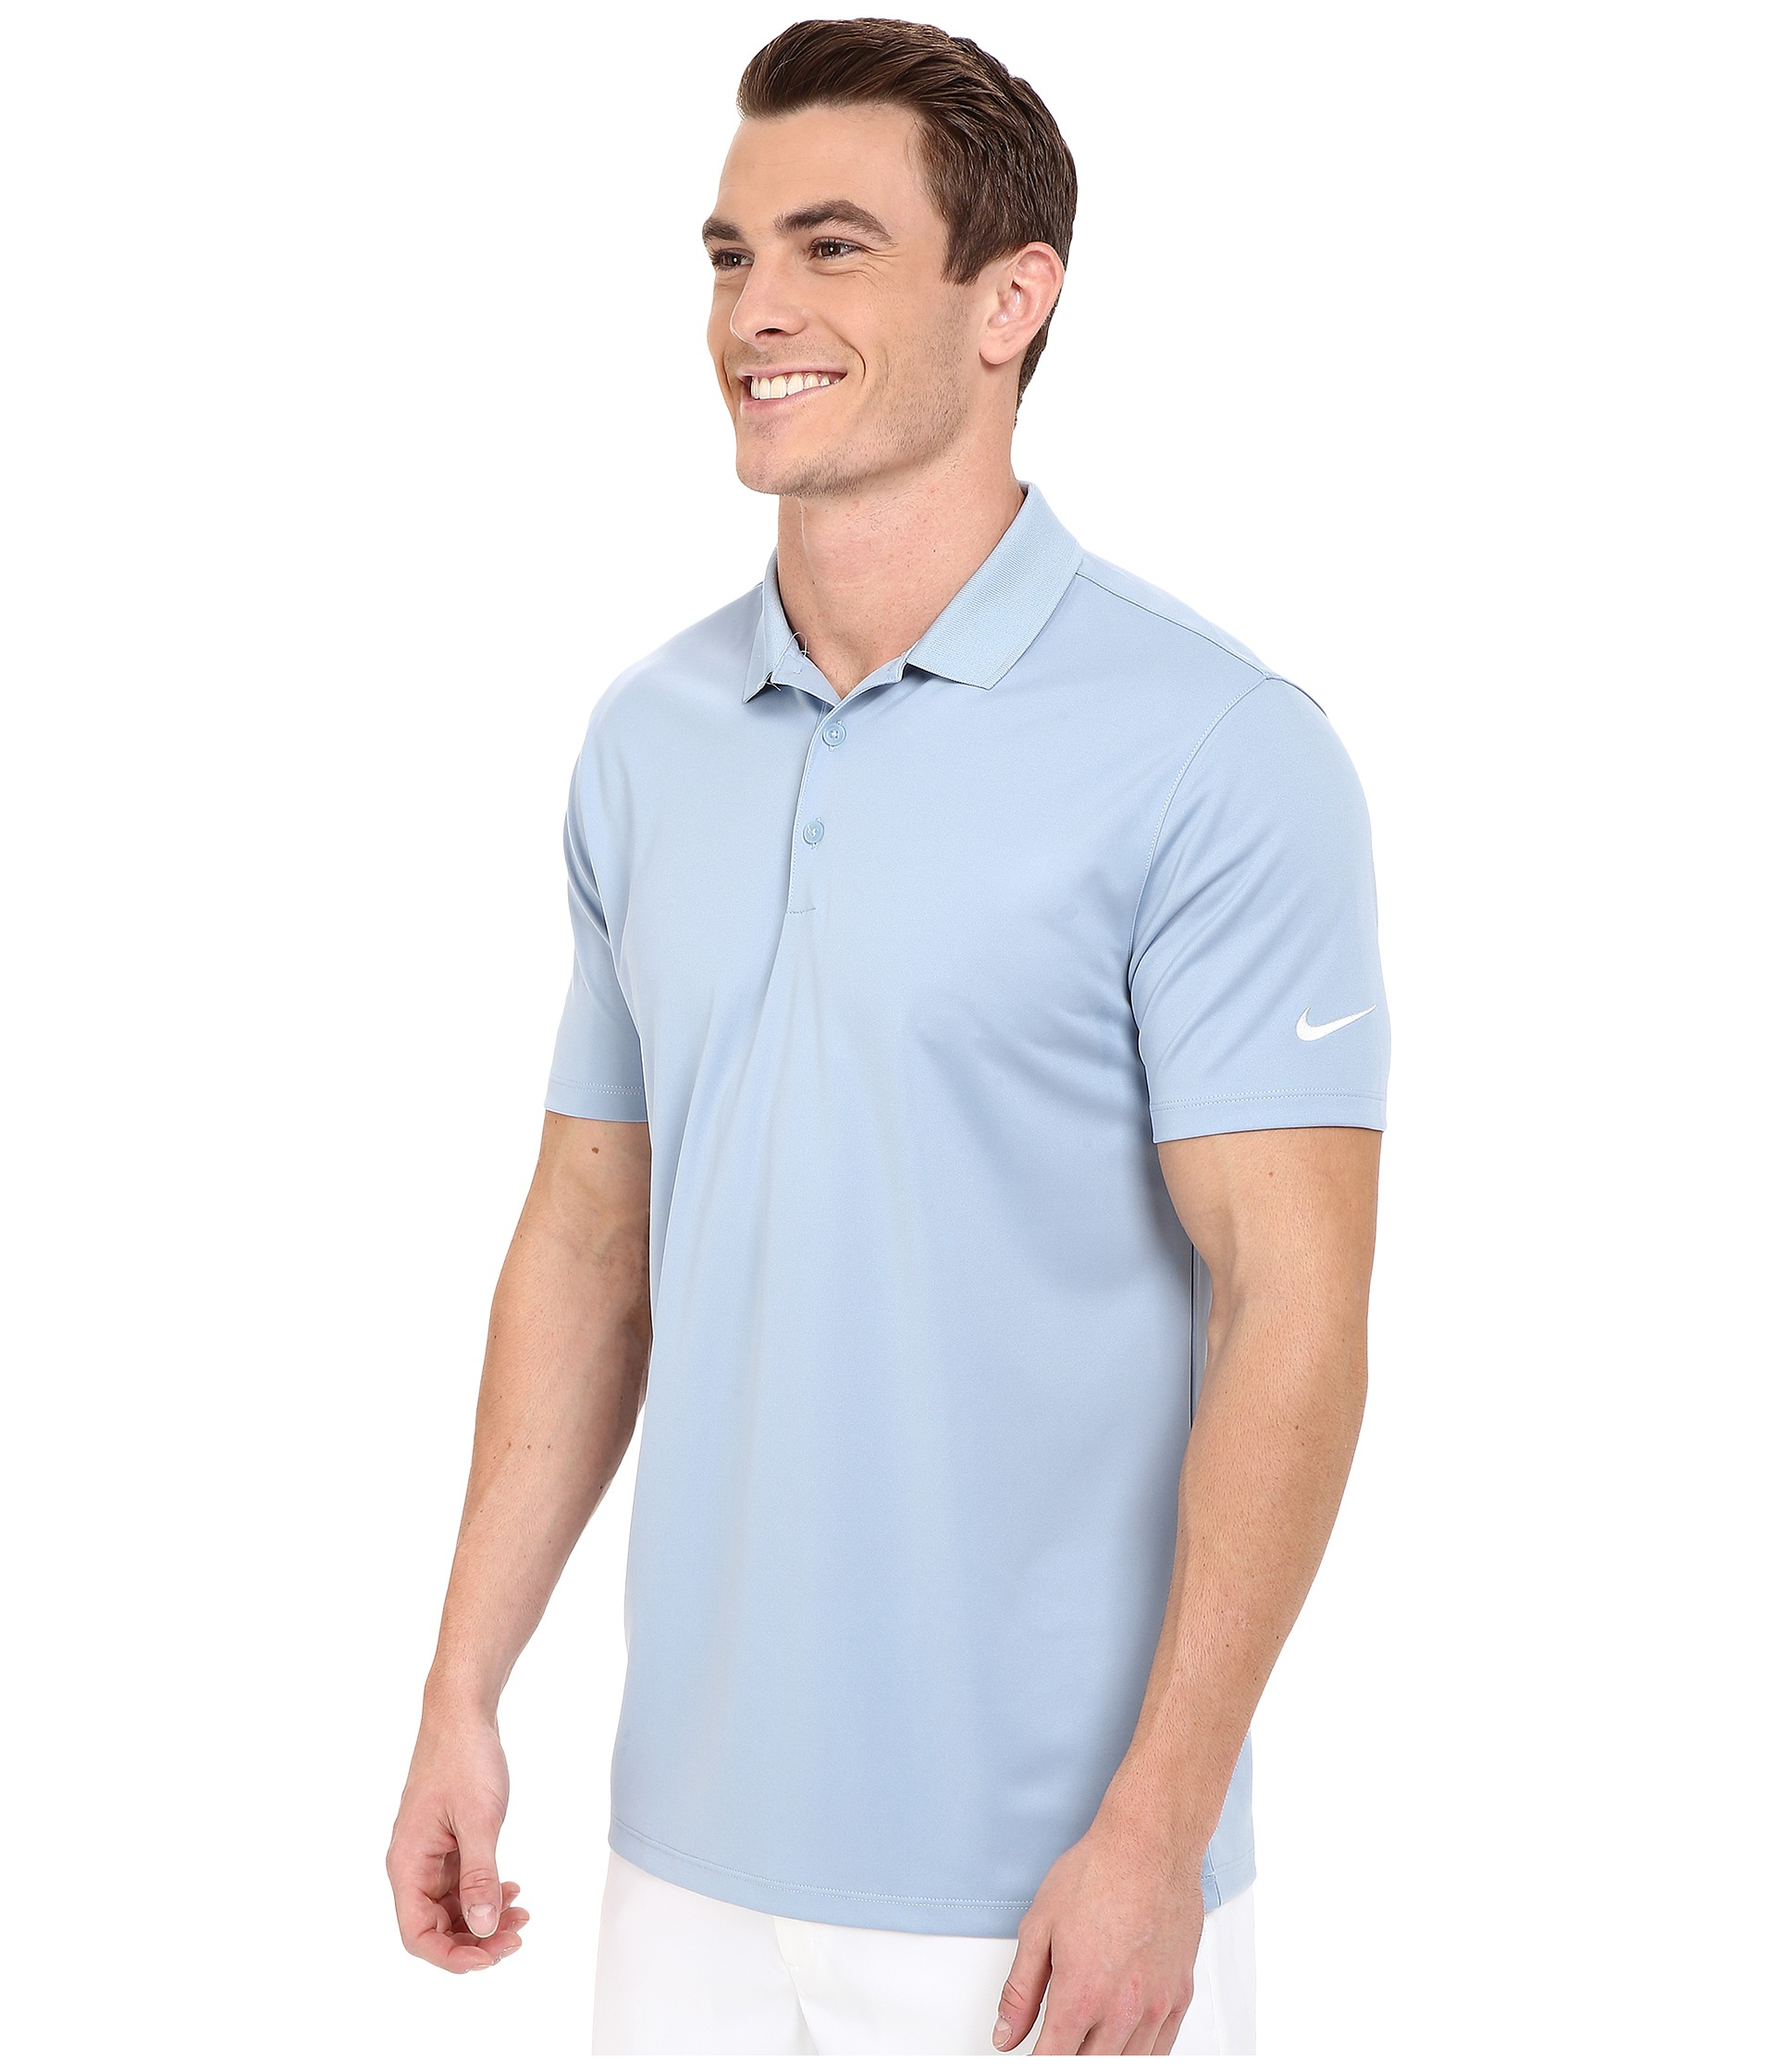 e2a3f8ec Nike Victory Solid Polo in Blue for Men - Lyst